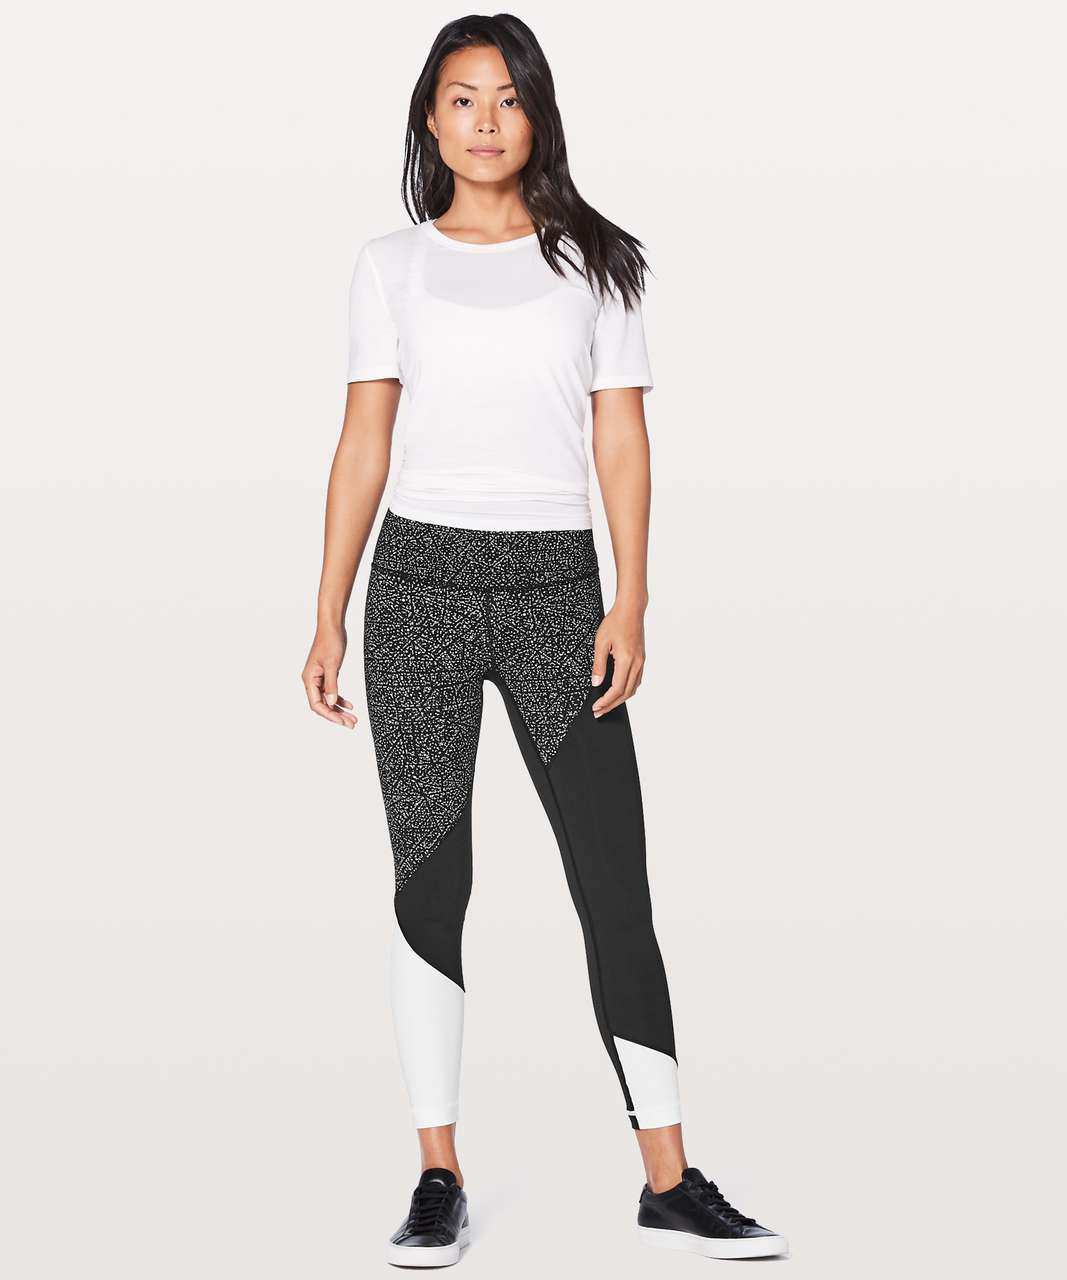 "Lululemon Wunder Under Hi-Rise 7/8 Tight (Special Edition) 25"" - Night View White Black / Black / White"